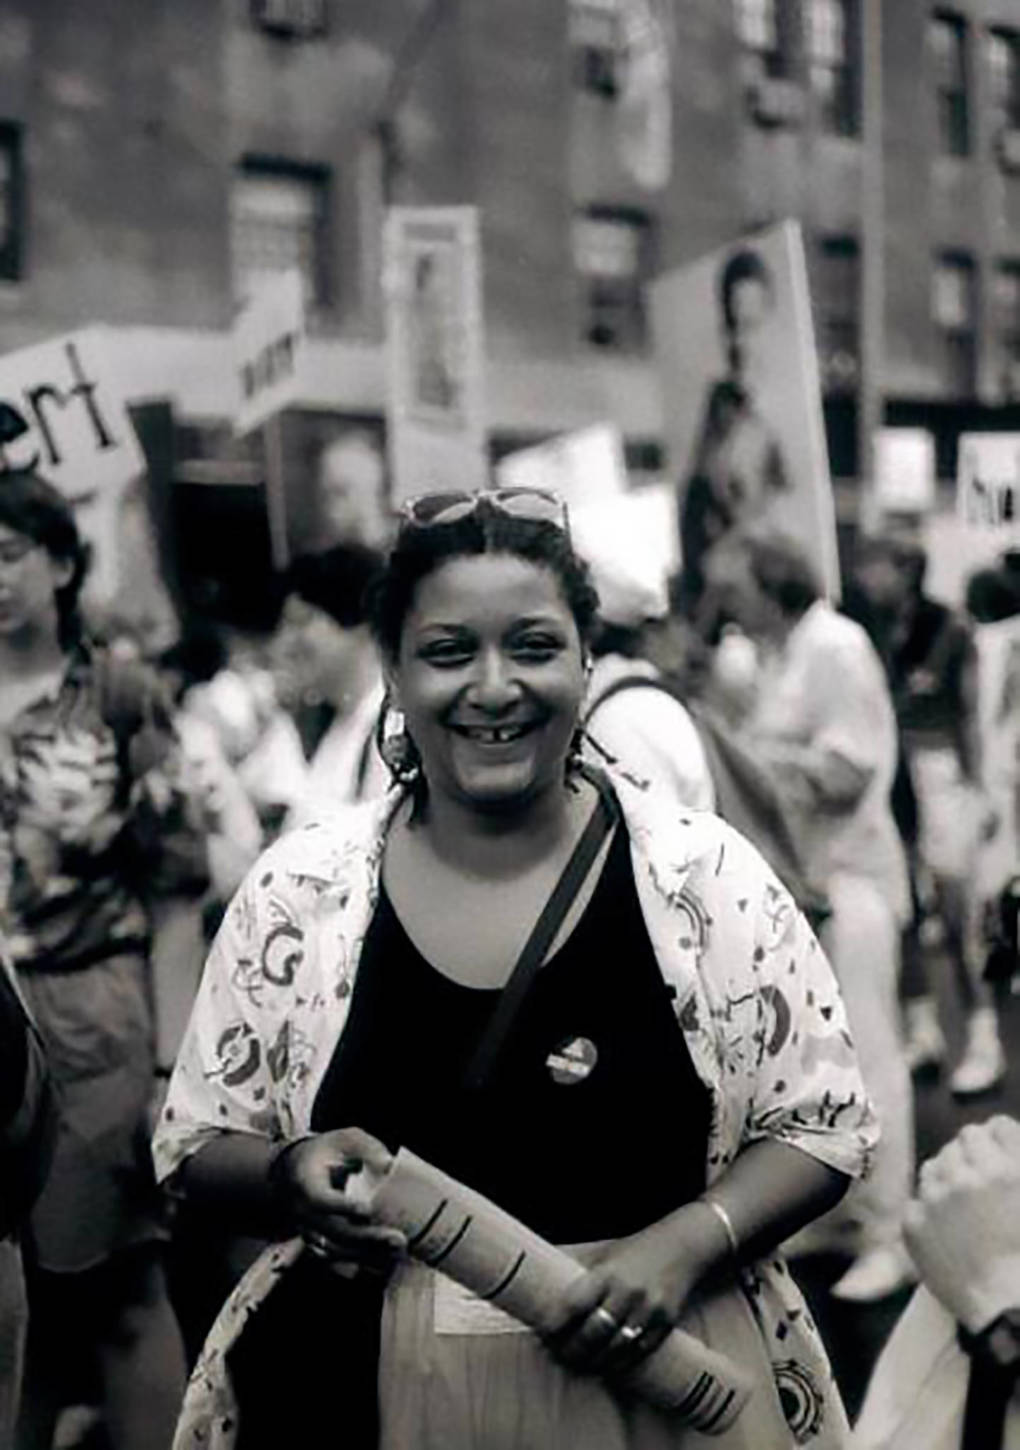 Jewelle Gomez at NYC Pride in 1989.